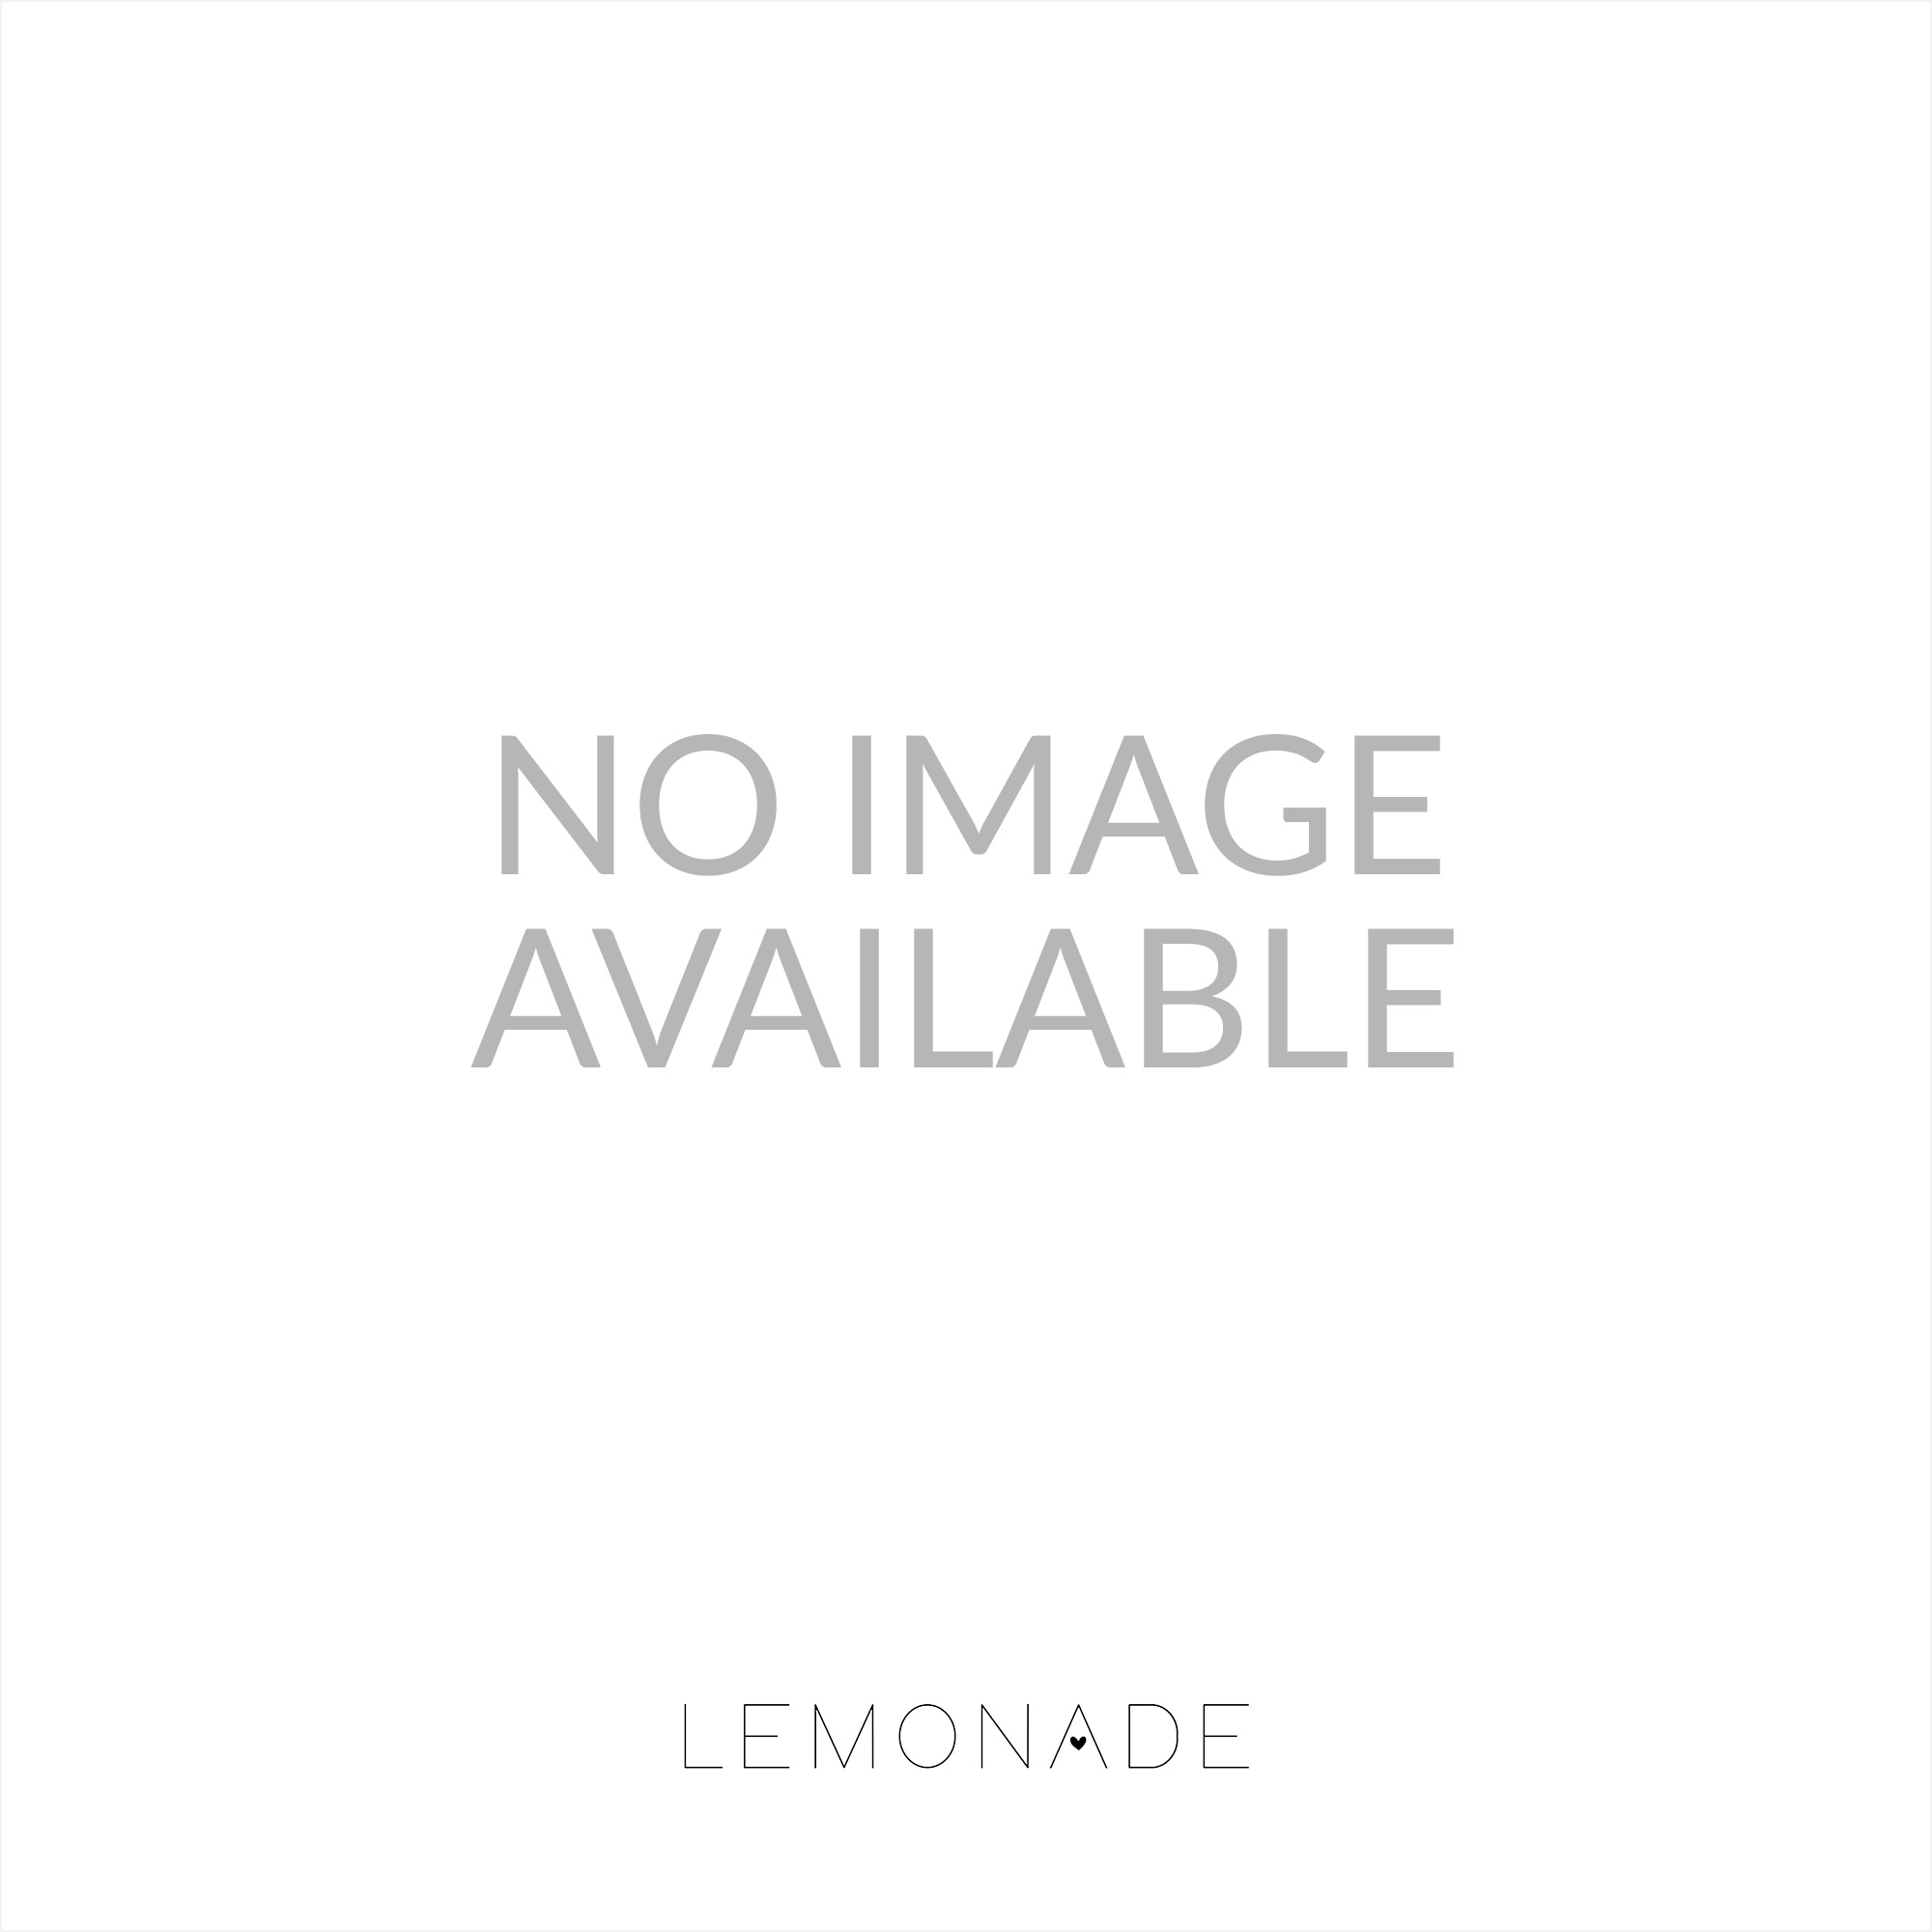 4b7568de32df Lemonade Glitter and Crystal Trim Sneakers Limited Edition ** PRE ORDER FOR  SEPT**